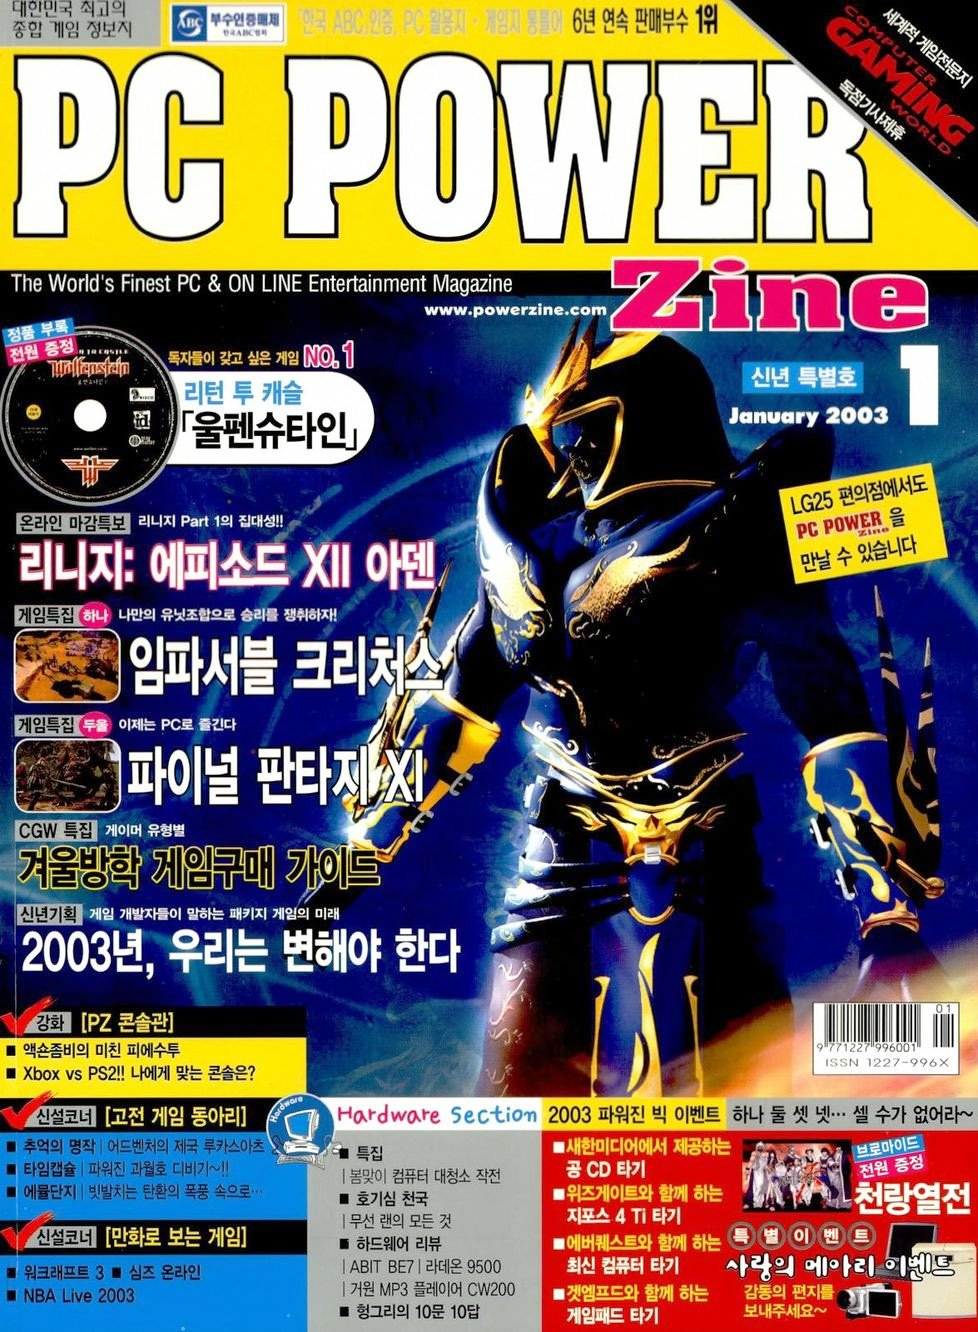 PC Power Zine Issue 090 (January 2003)